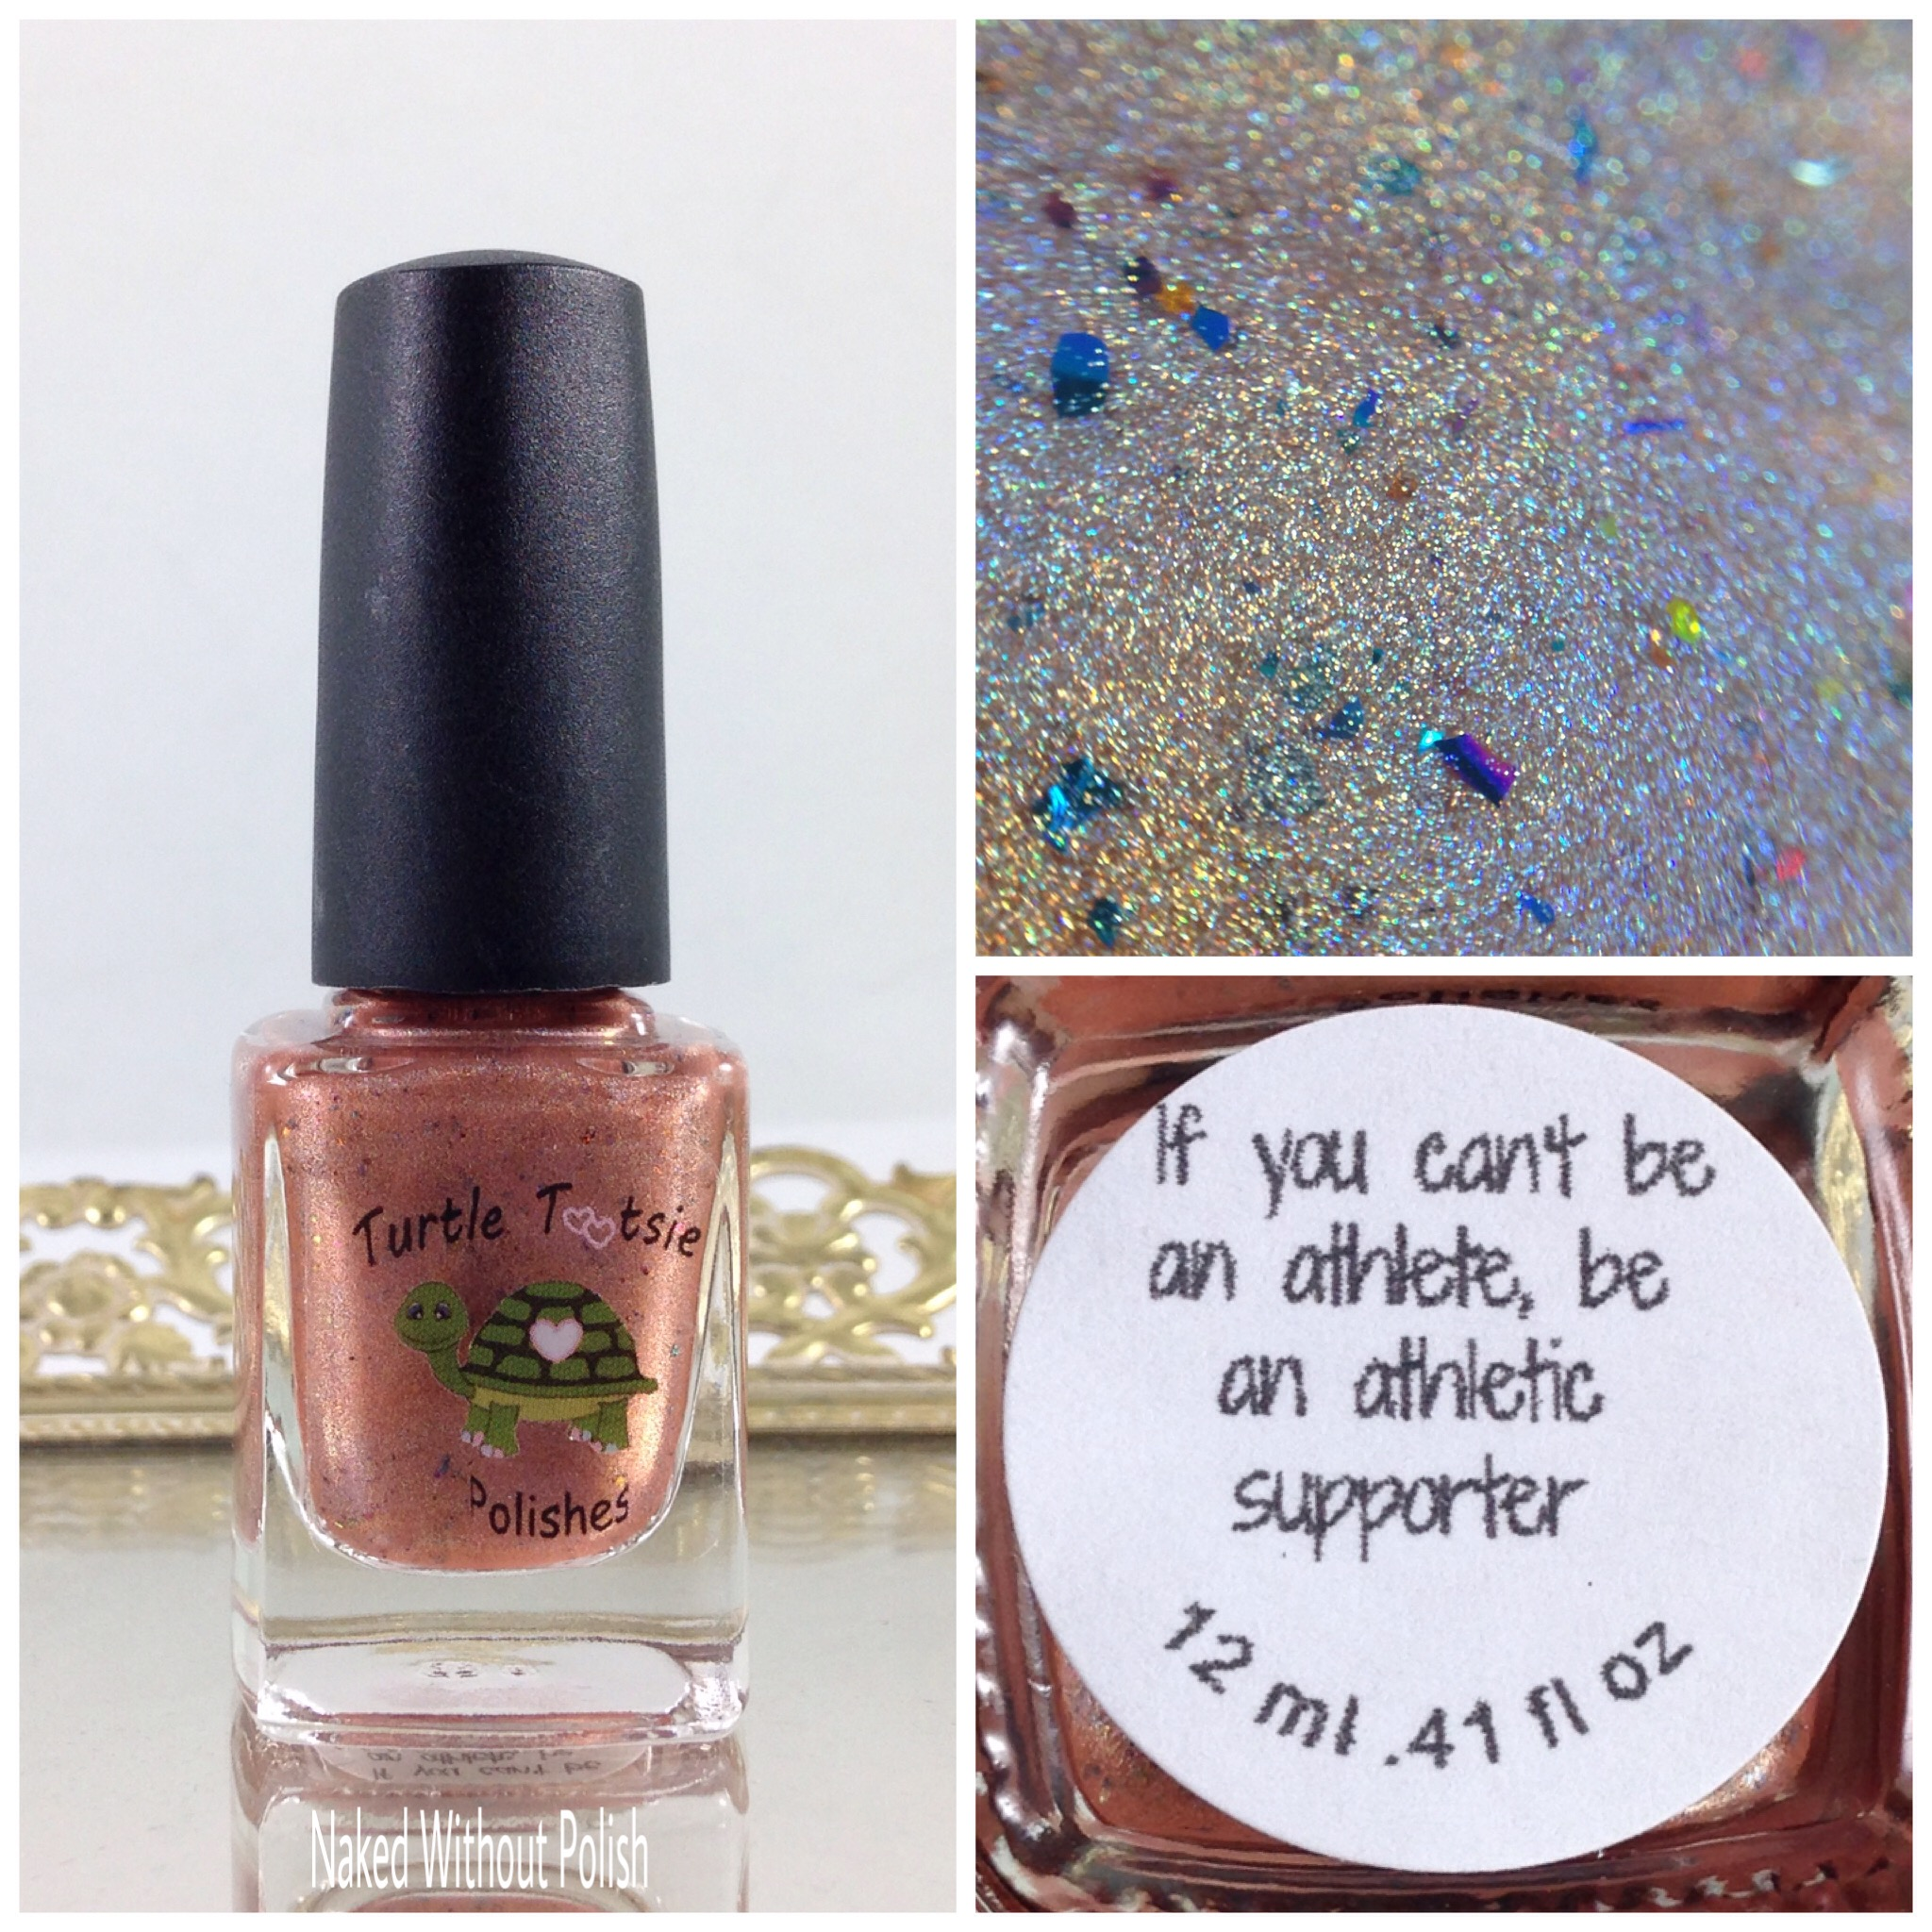 Turtle-Tootsie-Polishes-If-You-Cant-Be-an-Athlete-Be-an-Athletic-Supporter-1